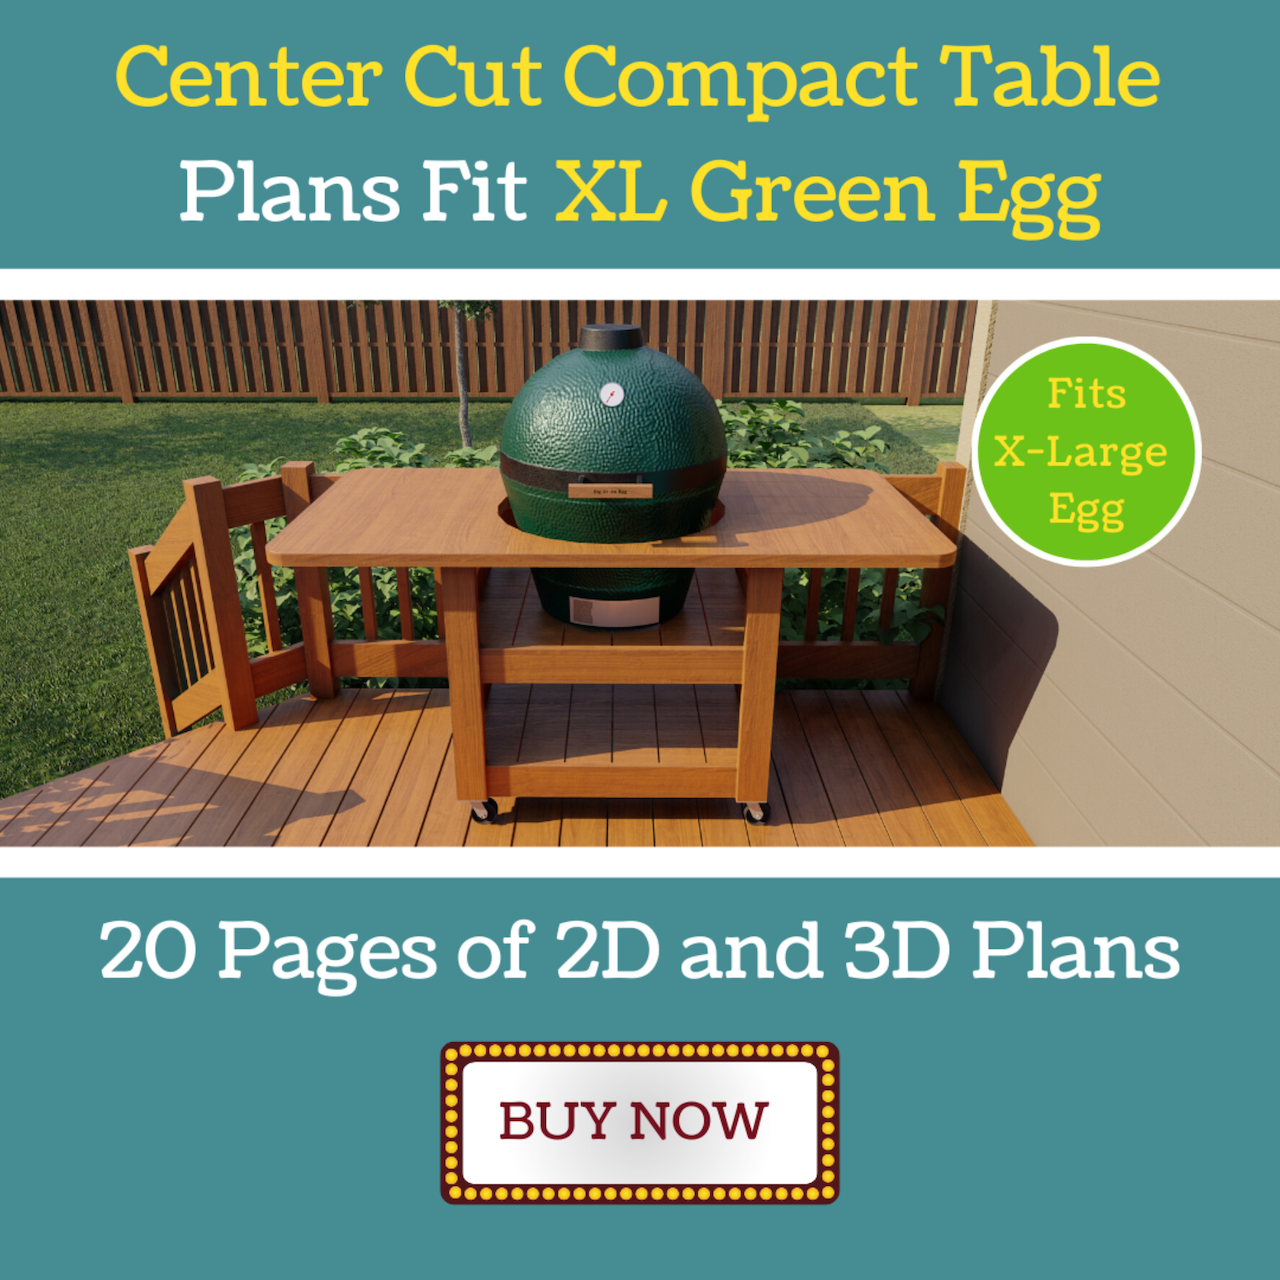 Compact Center Cut Table for XL Green Egg